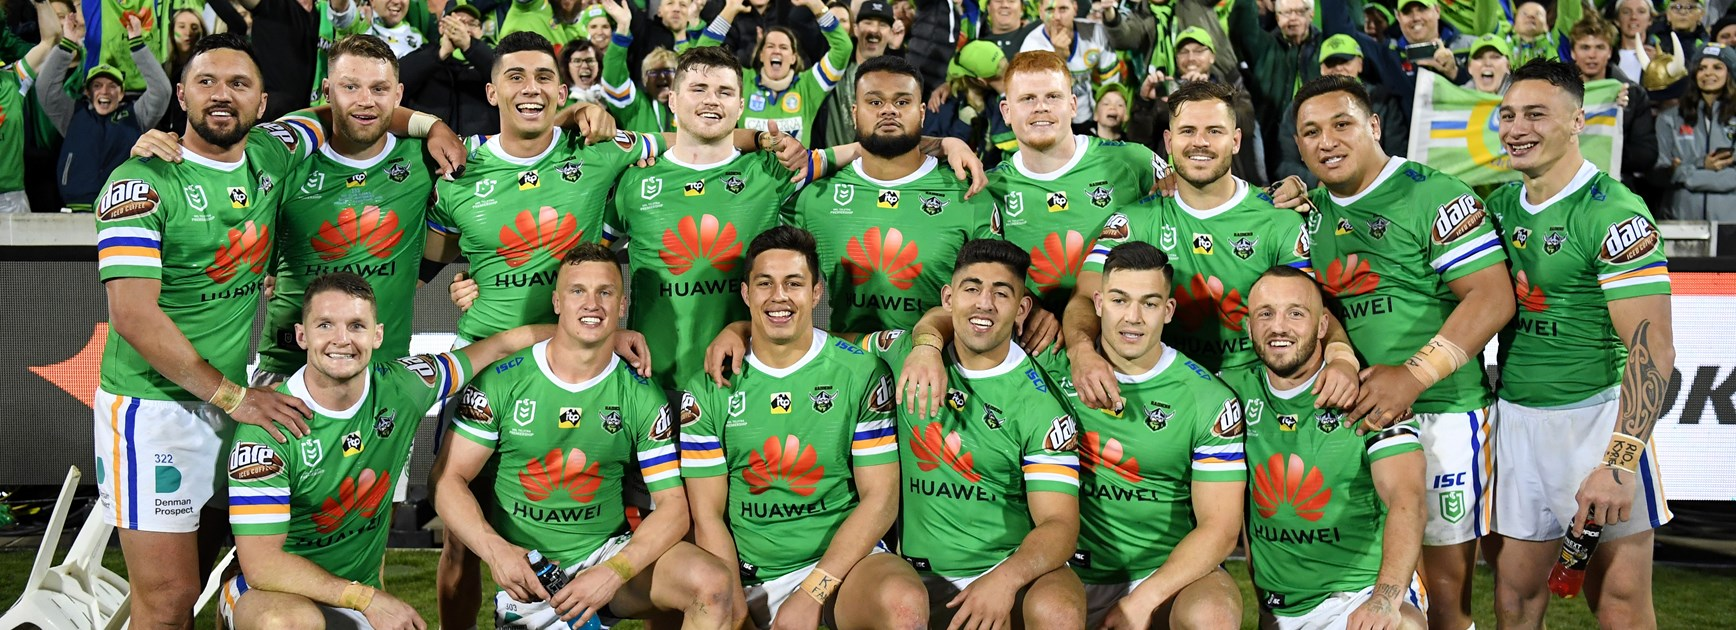 Huawei to invite 2019 Raiders members to watch training before NRL Grand Final